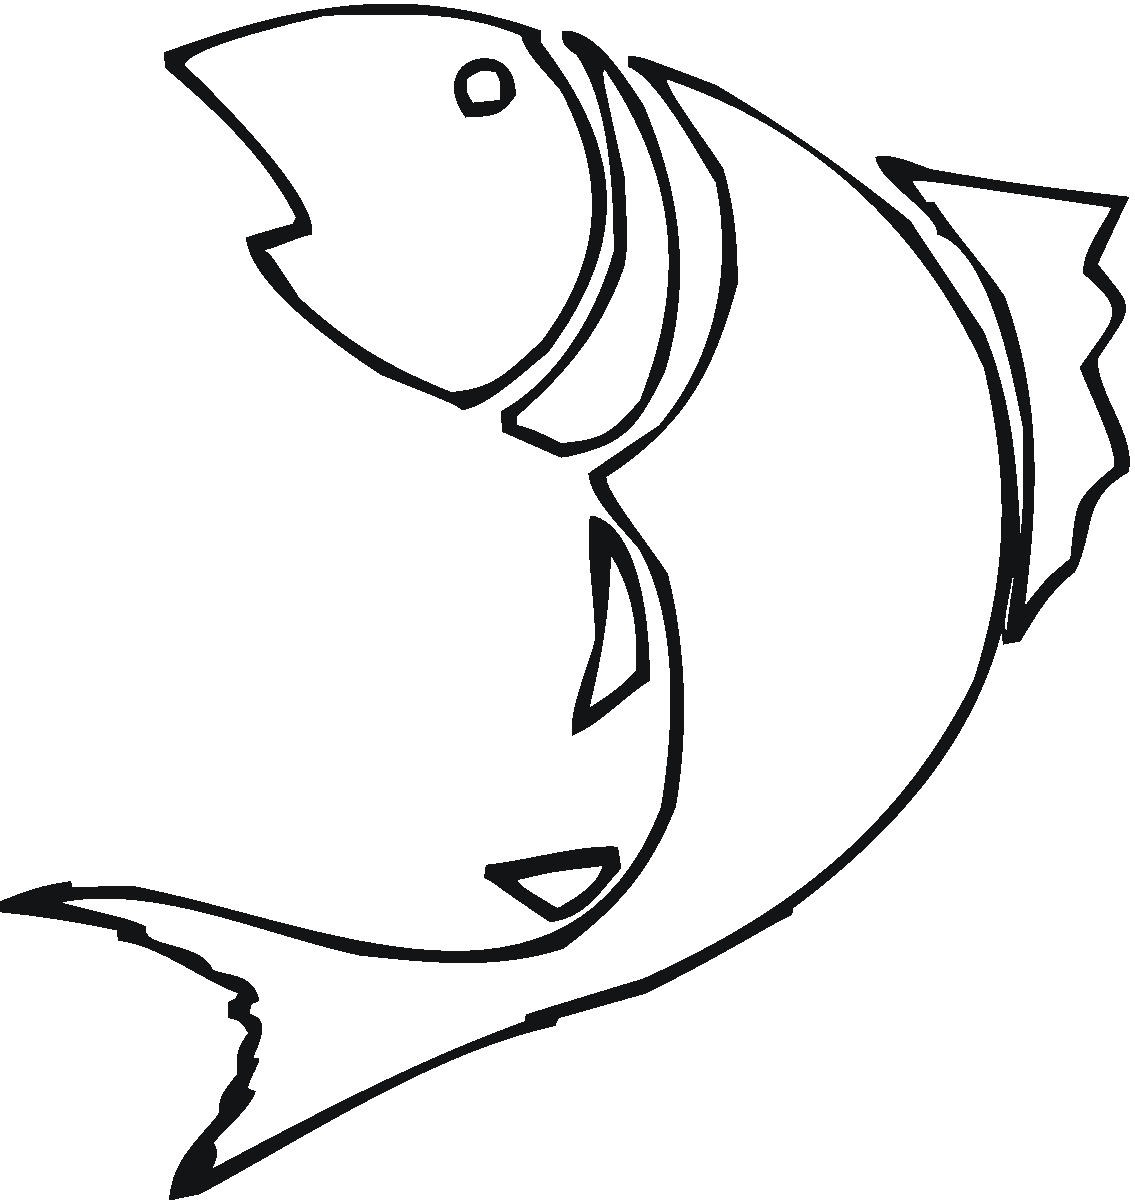 Zzve Line Art : Fish line art cliparts